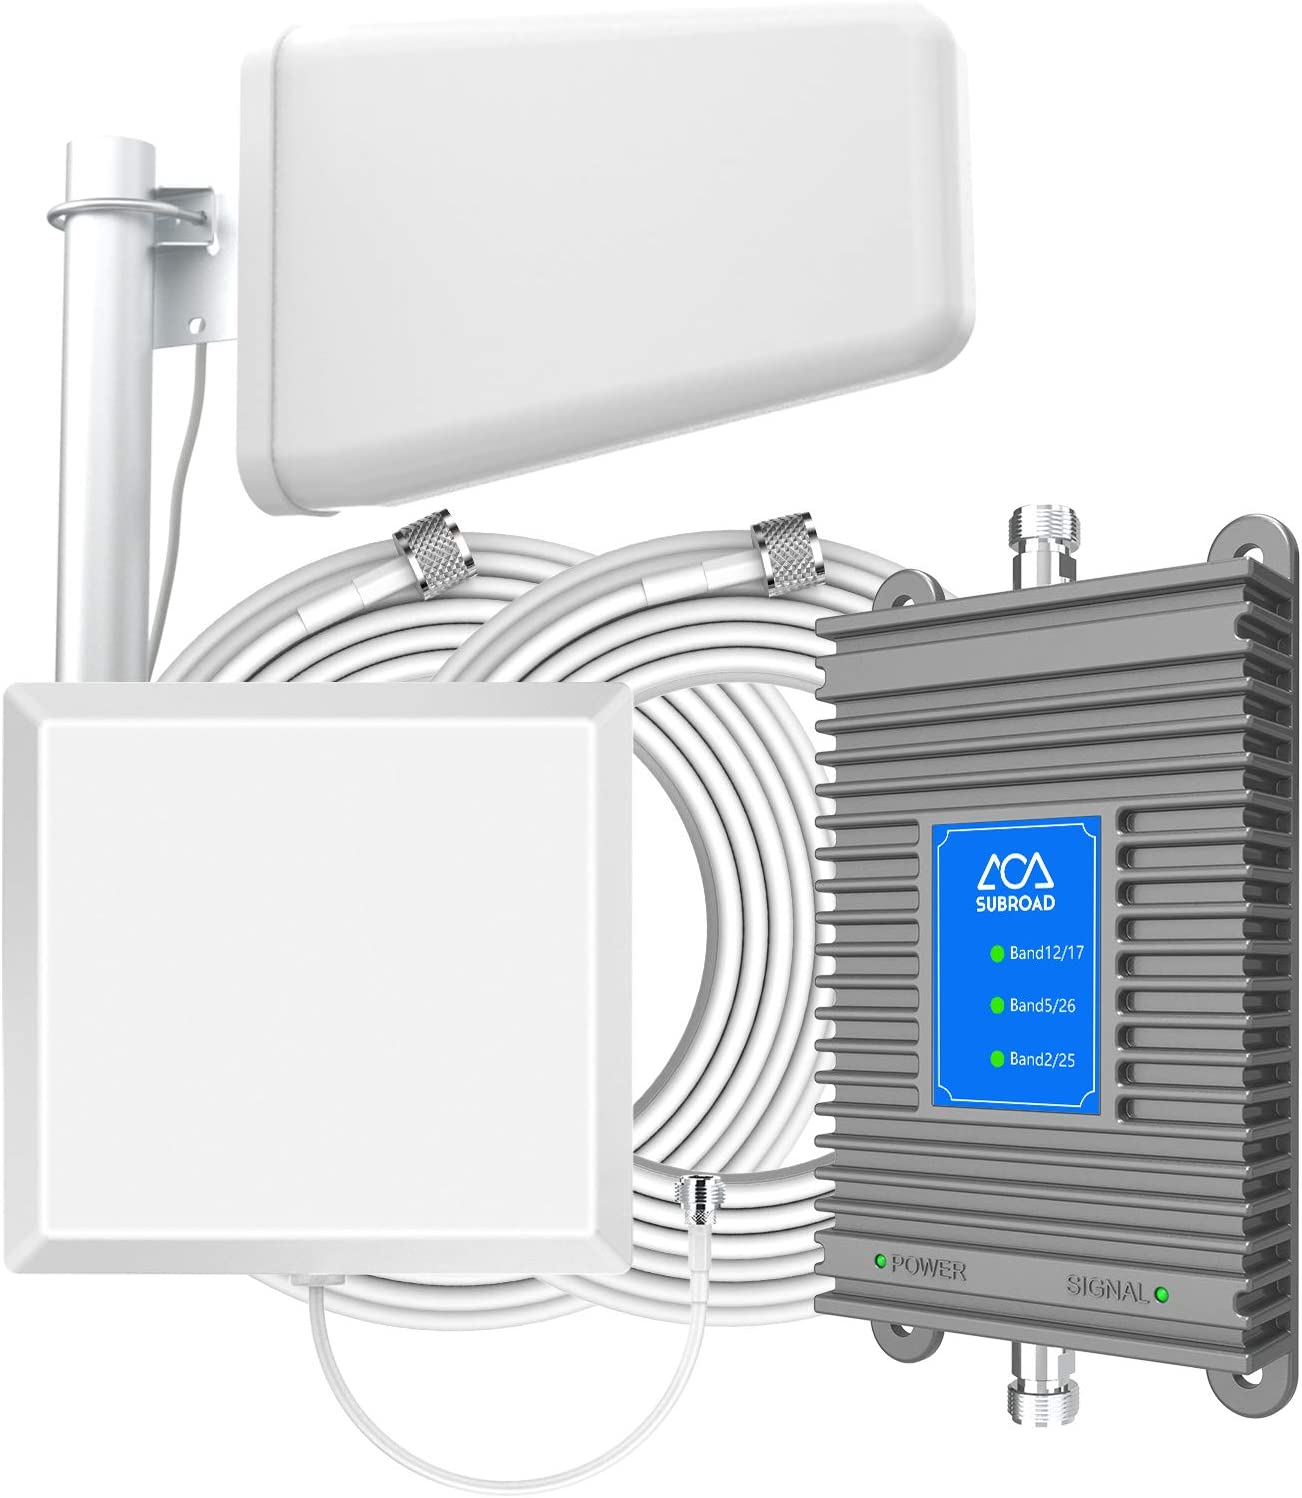 ATT Cell Phone Antenna Booster for Home GSM 3G 4G LTE Band 2/5/12/17 AT&T T-Mobile U.S. Cellular Cricket Cell Phone Signal Booster Boost Voice and Data Cover Up to 5,000 Sq Ft